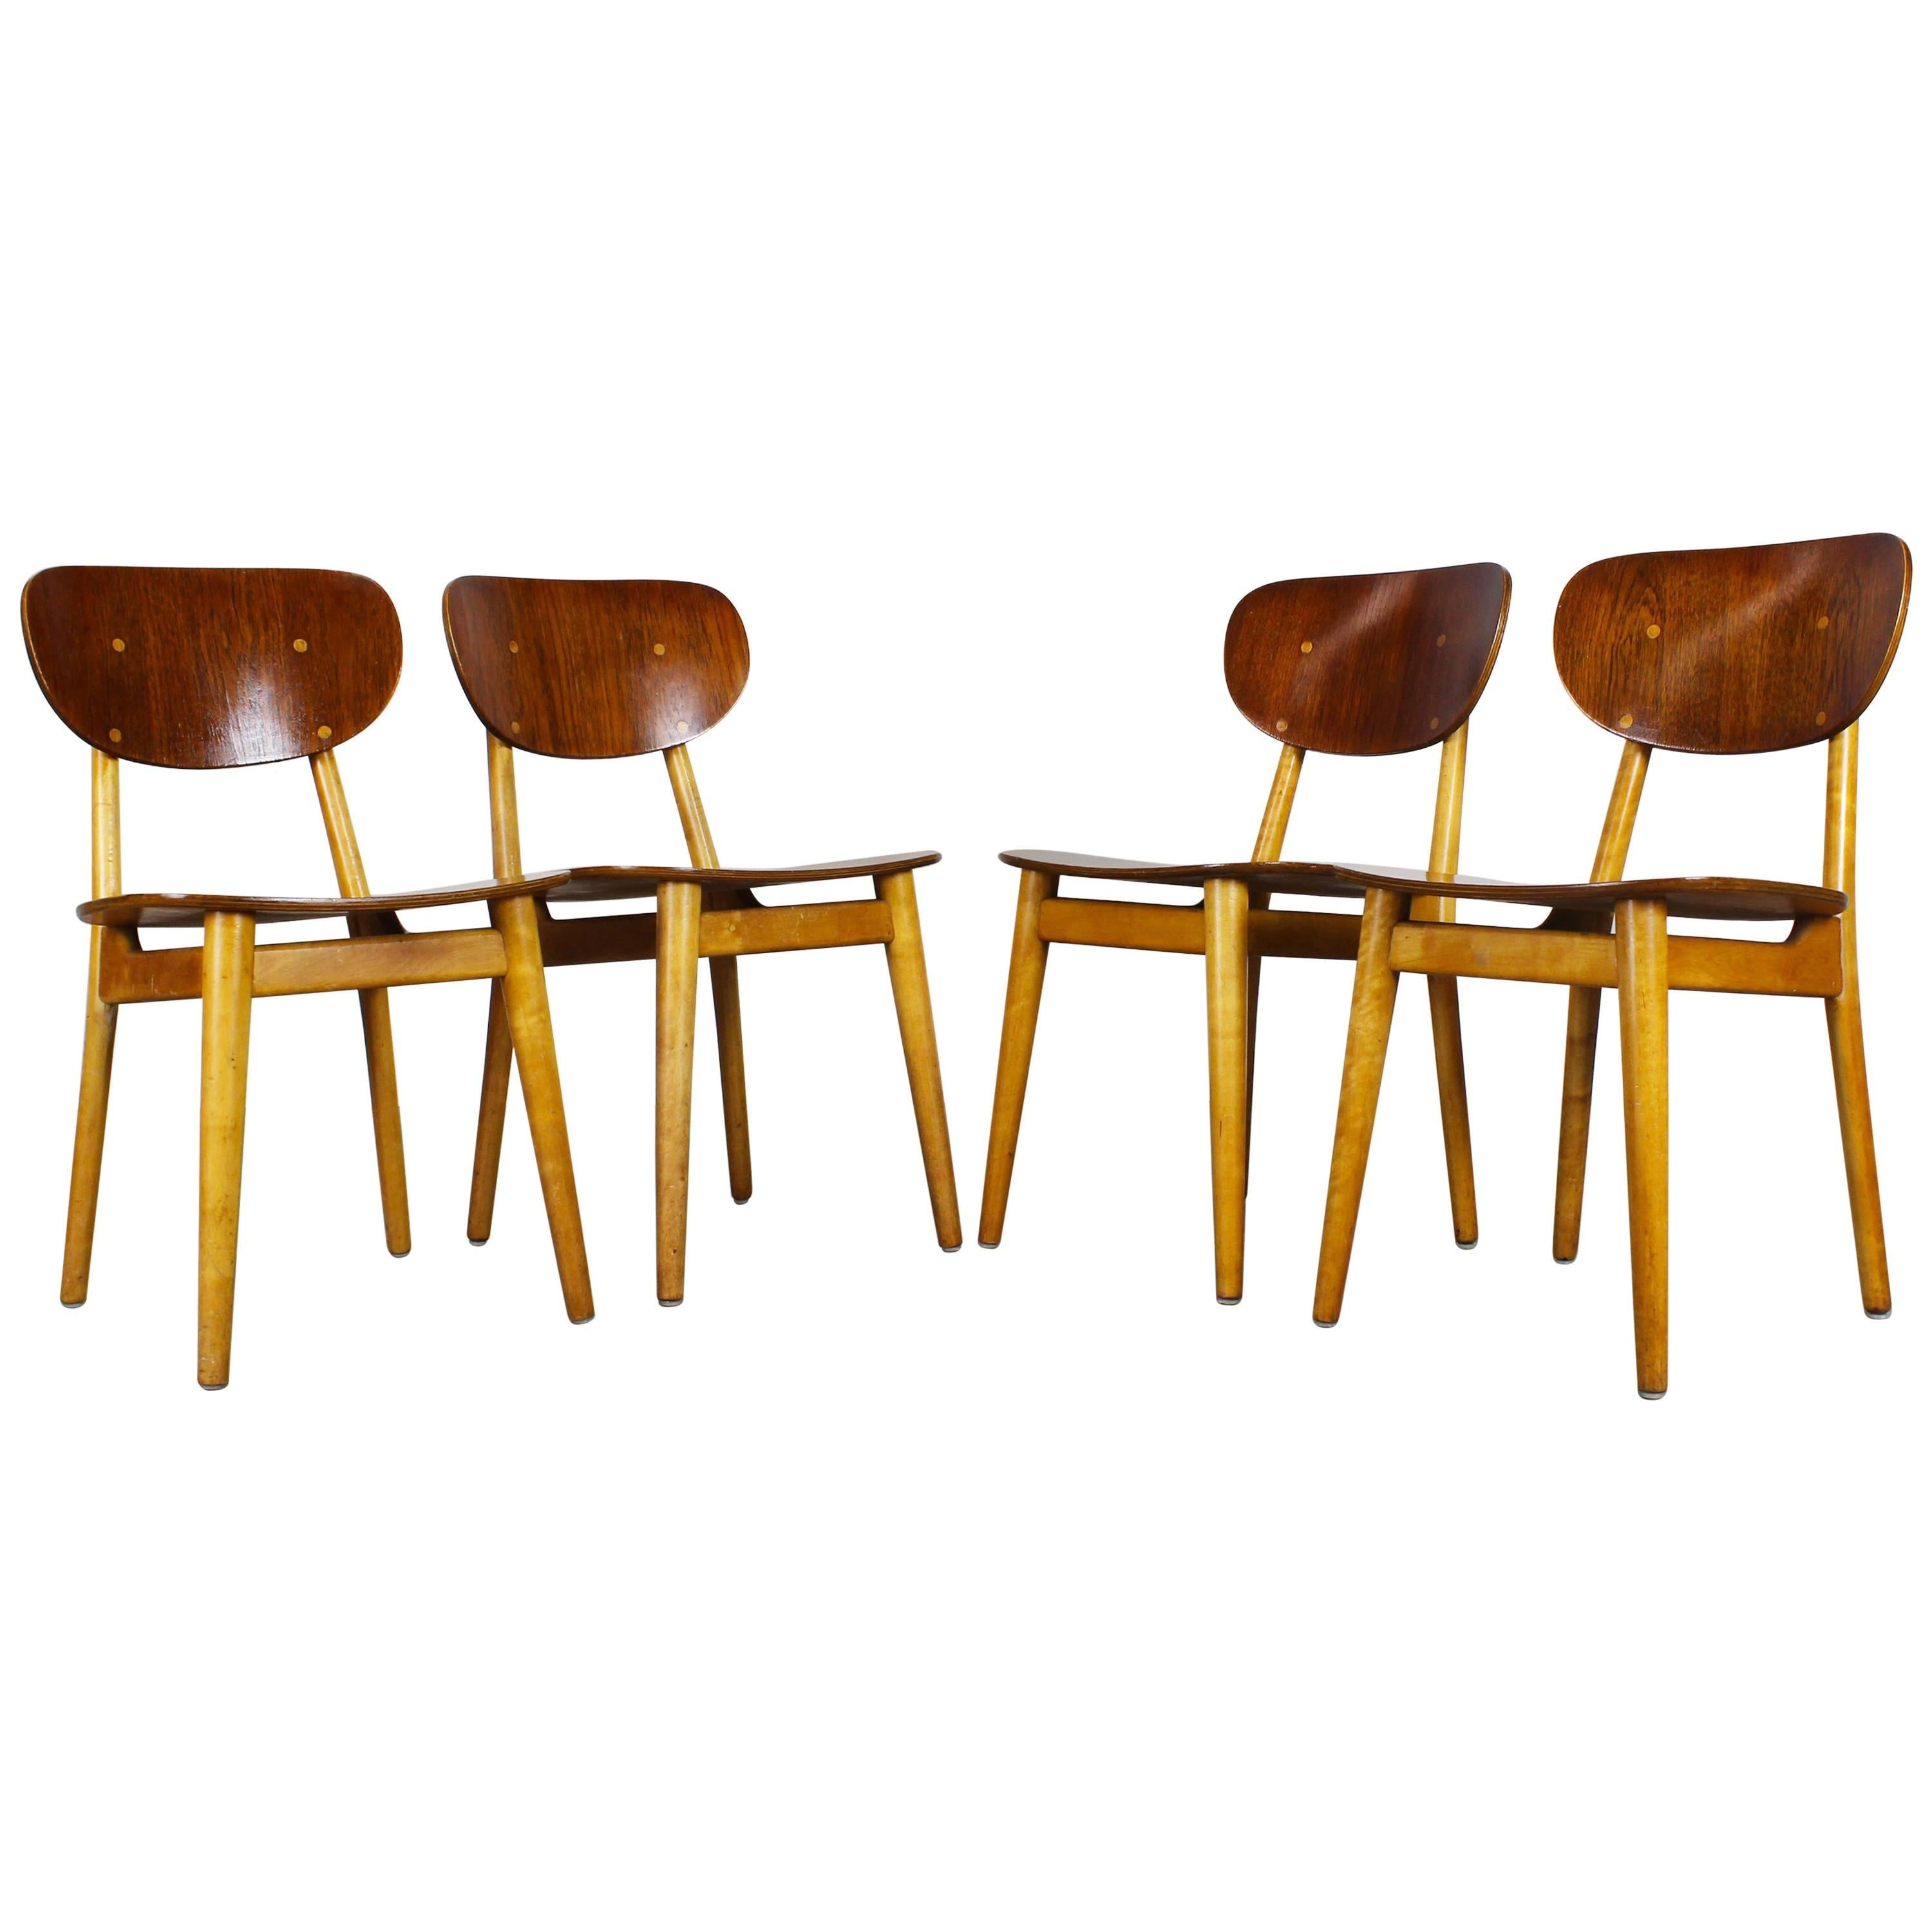 Set of four dining chairs sb11 by cees braakman for pastoe beech teak dutch for sale at 1stdibs